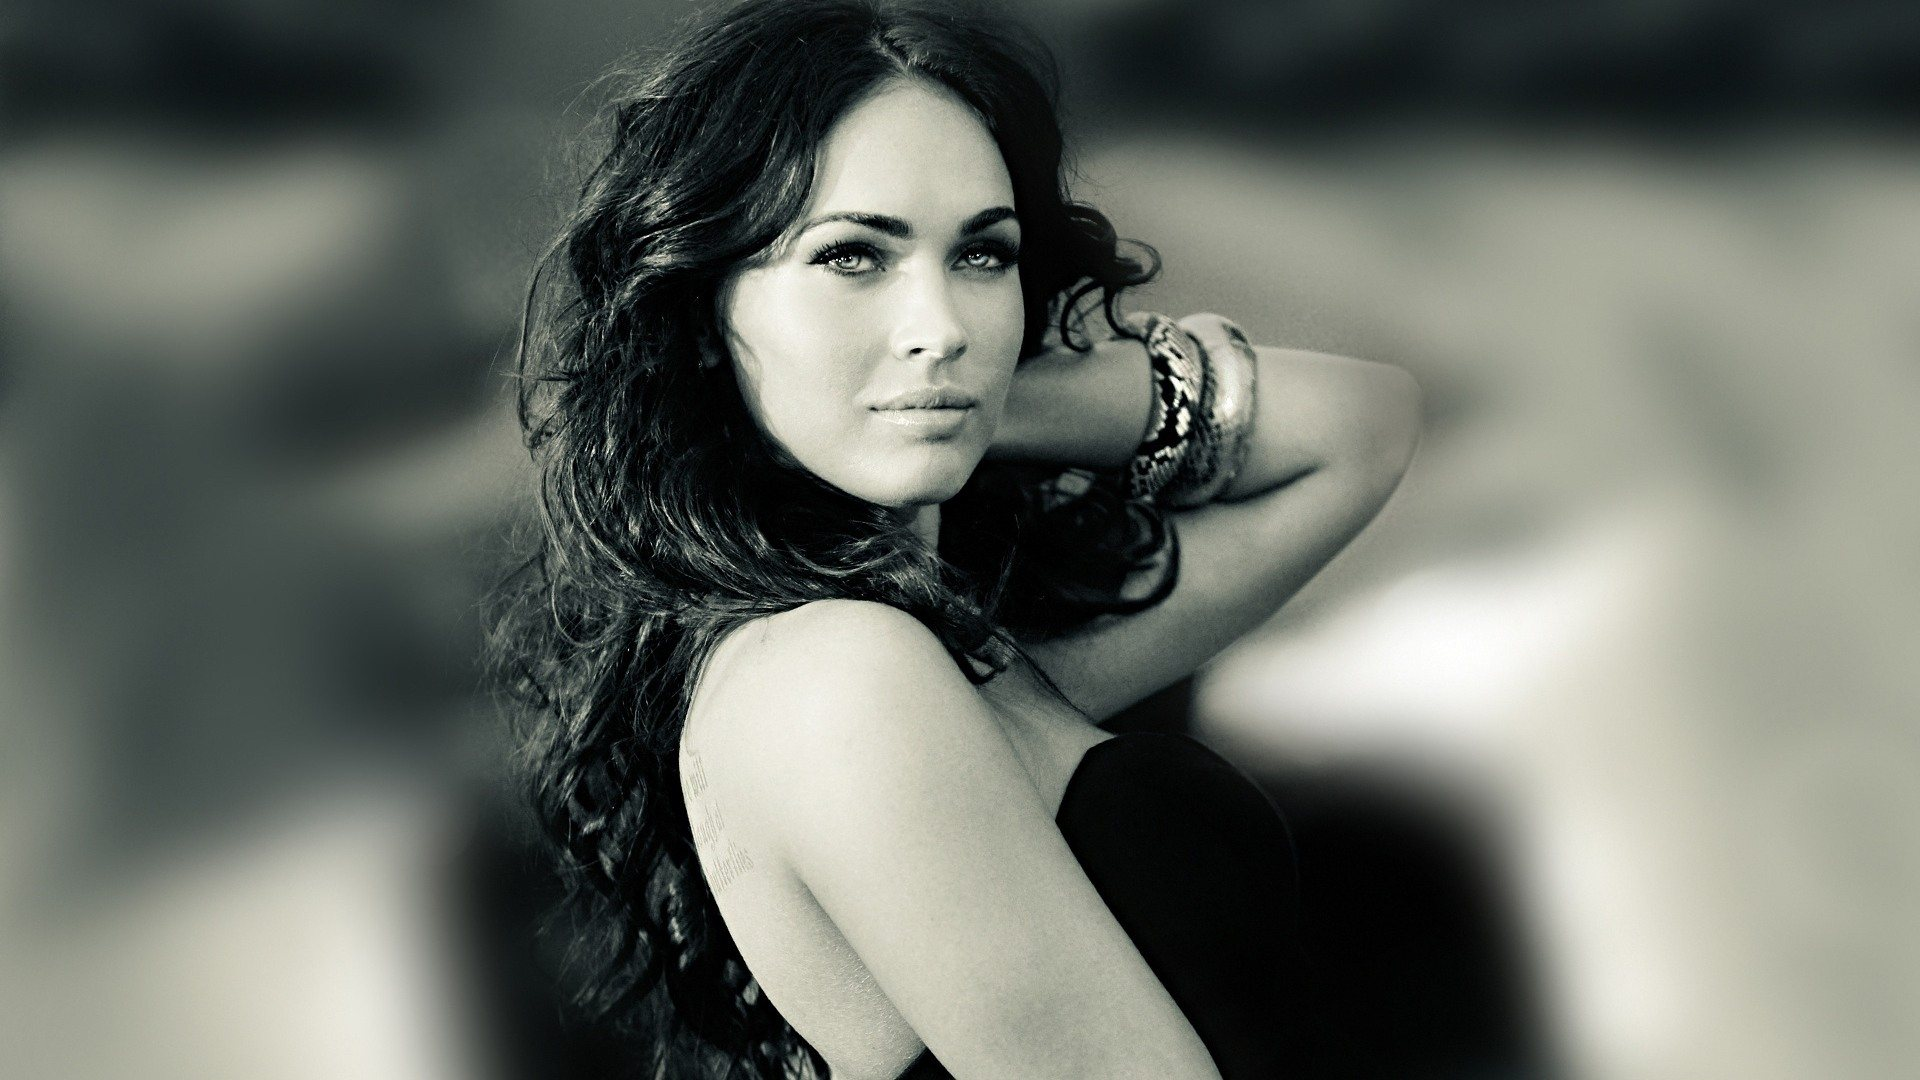 Megan fox wallpapers high resolution and quality download New all hd video